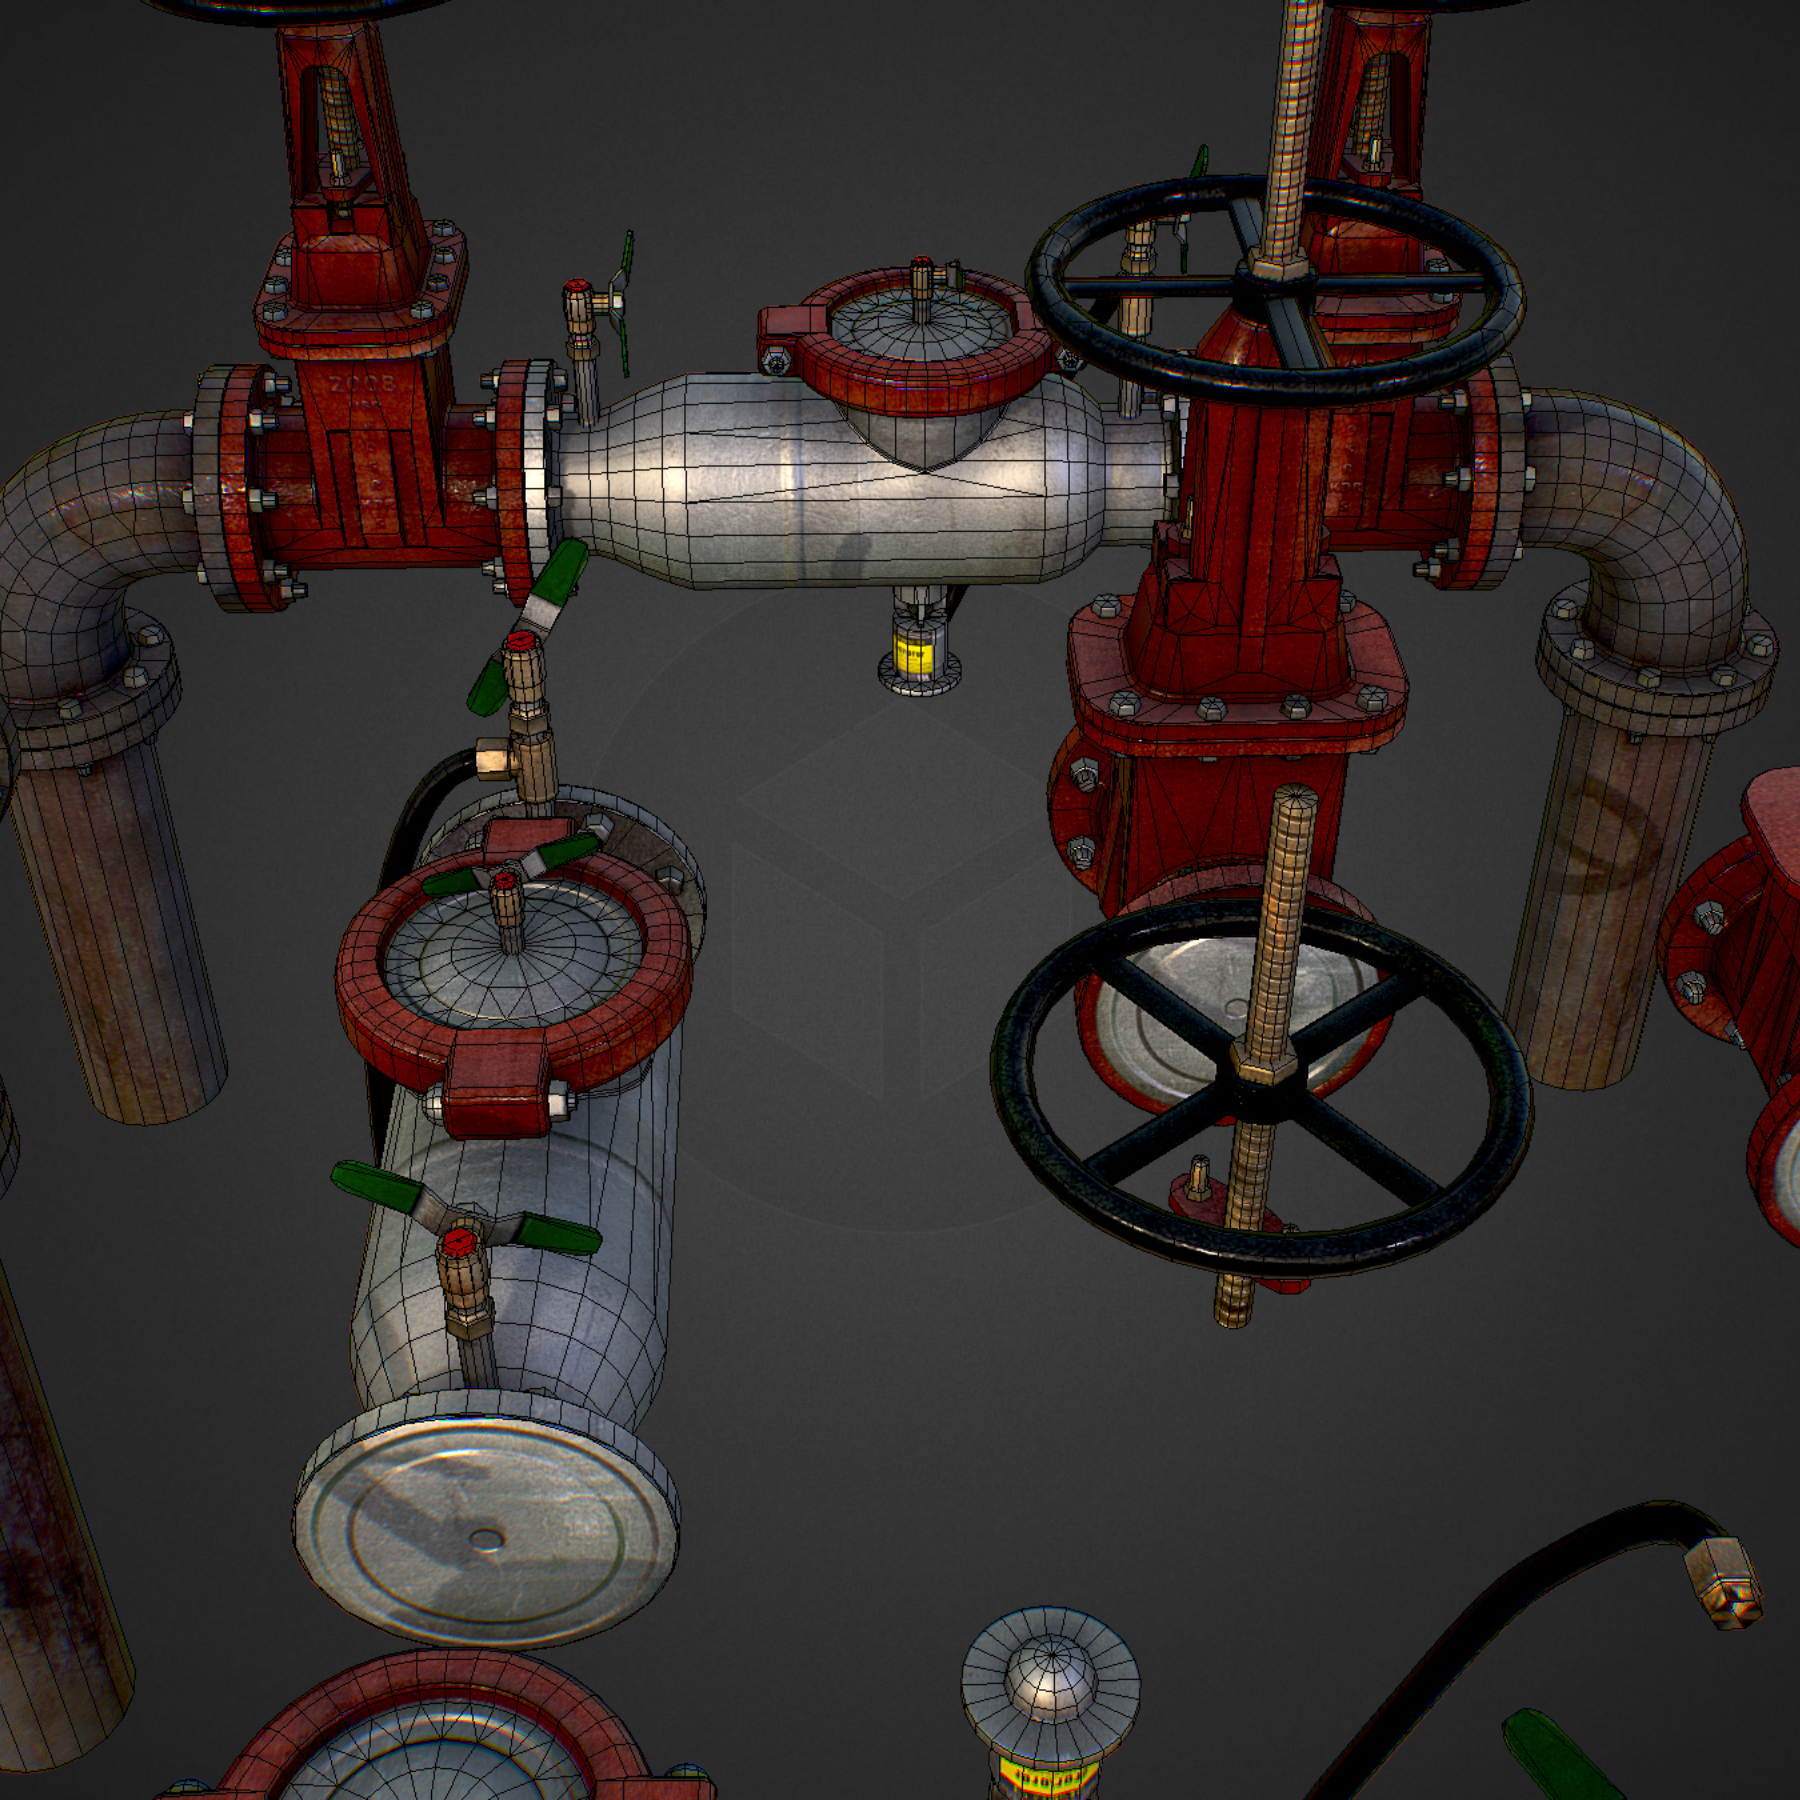 low poly game backflow water pipe constructor 3d model max  fbx ma mb tga targa icb vda vst pix obj 272485